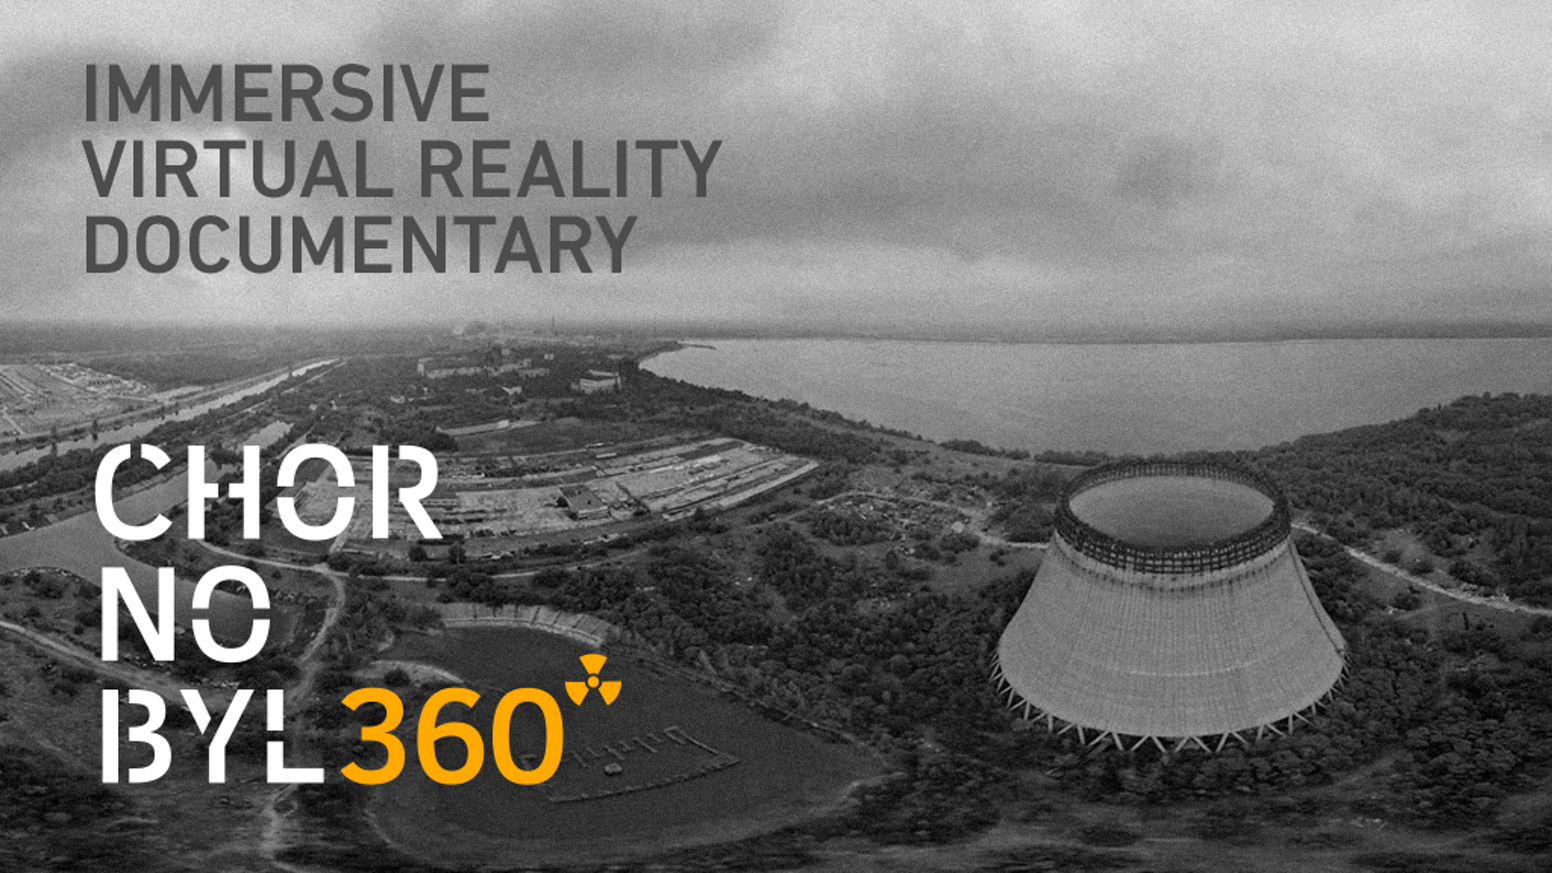 Thank you for your support, the campaign was successfully funded! Download the Documentary early preview at www.chornobyl360.com